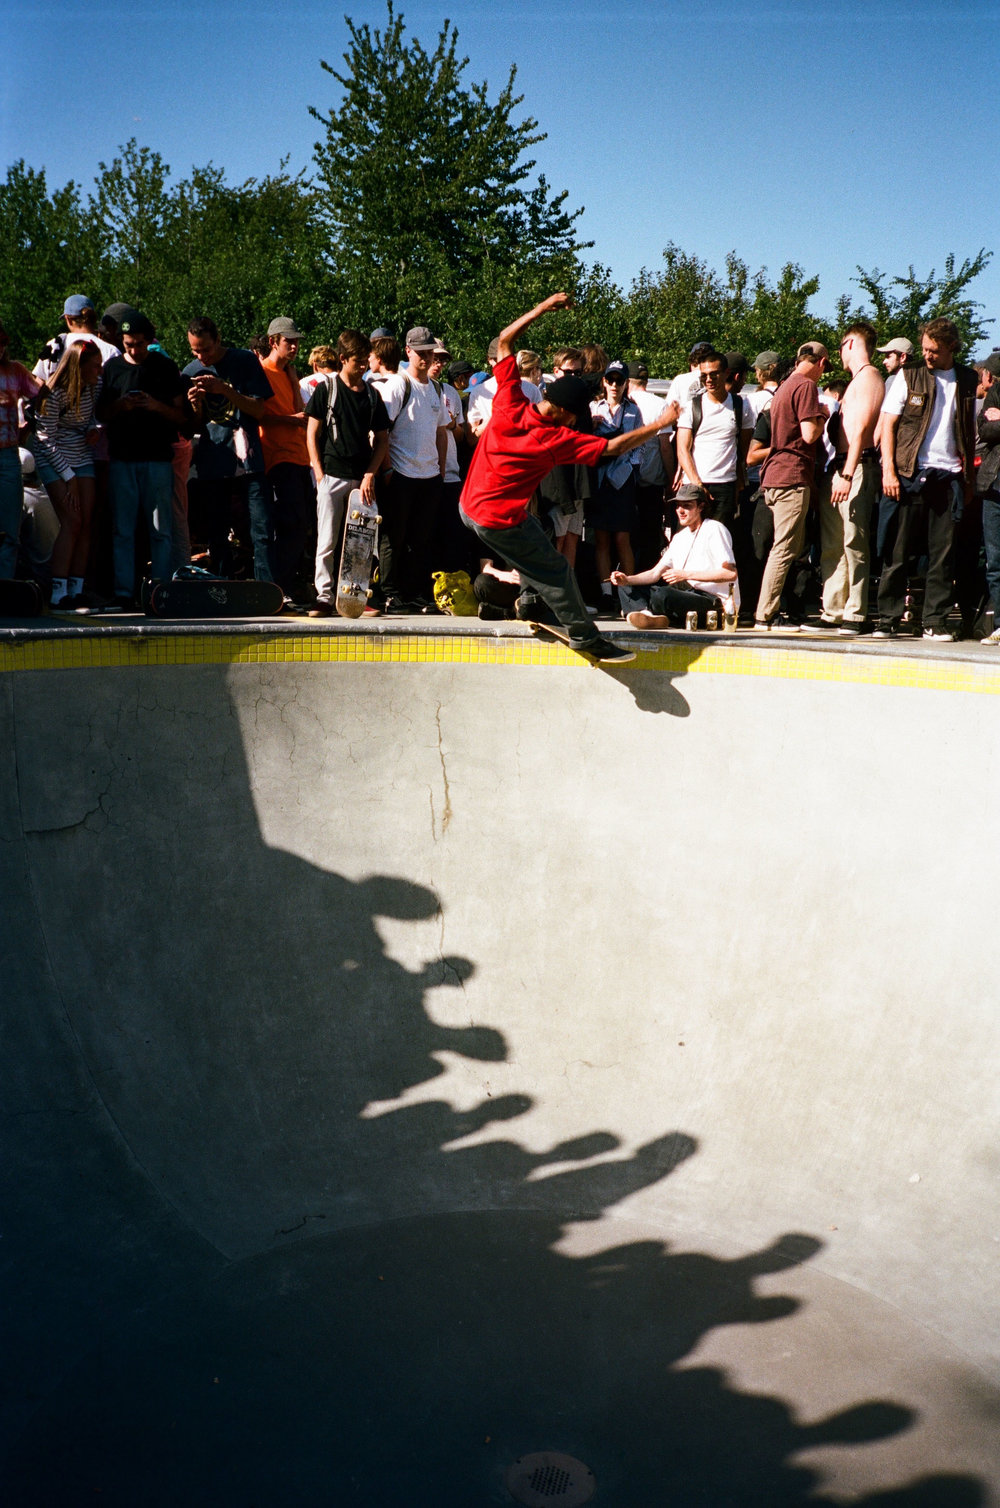 unknown, fs 5.0. Photography by Yentl Touboul